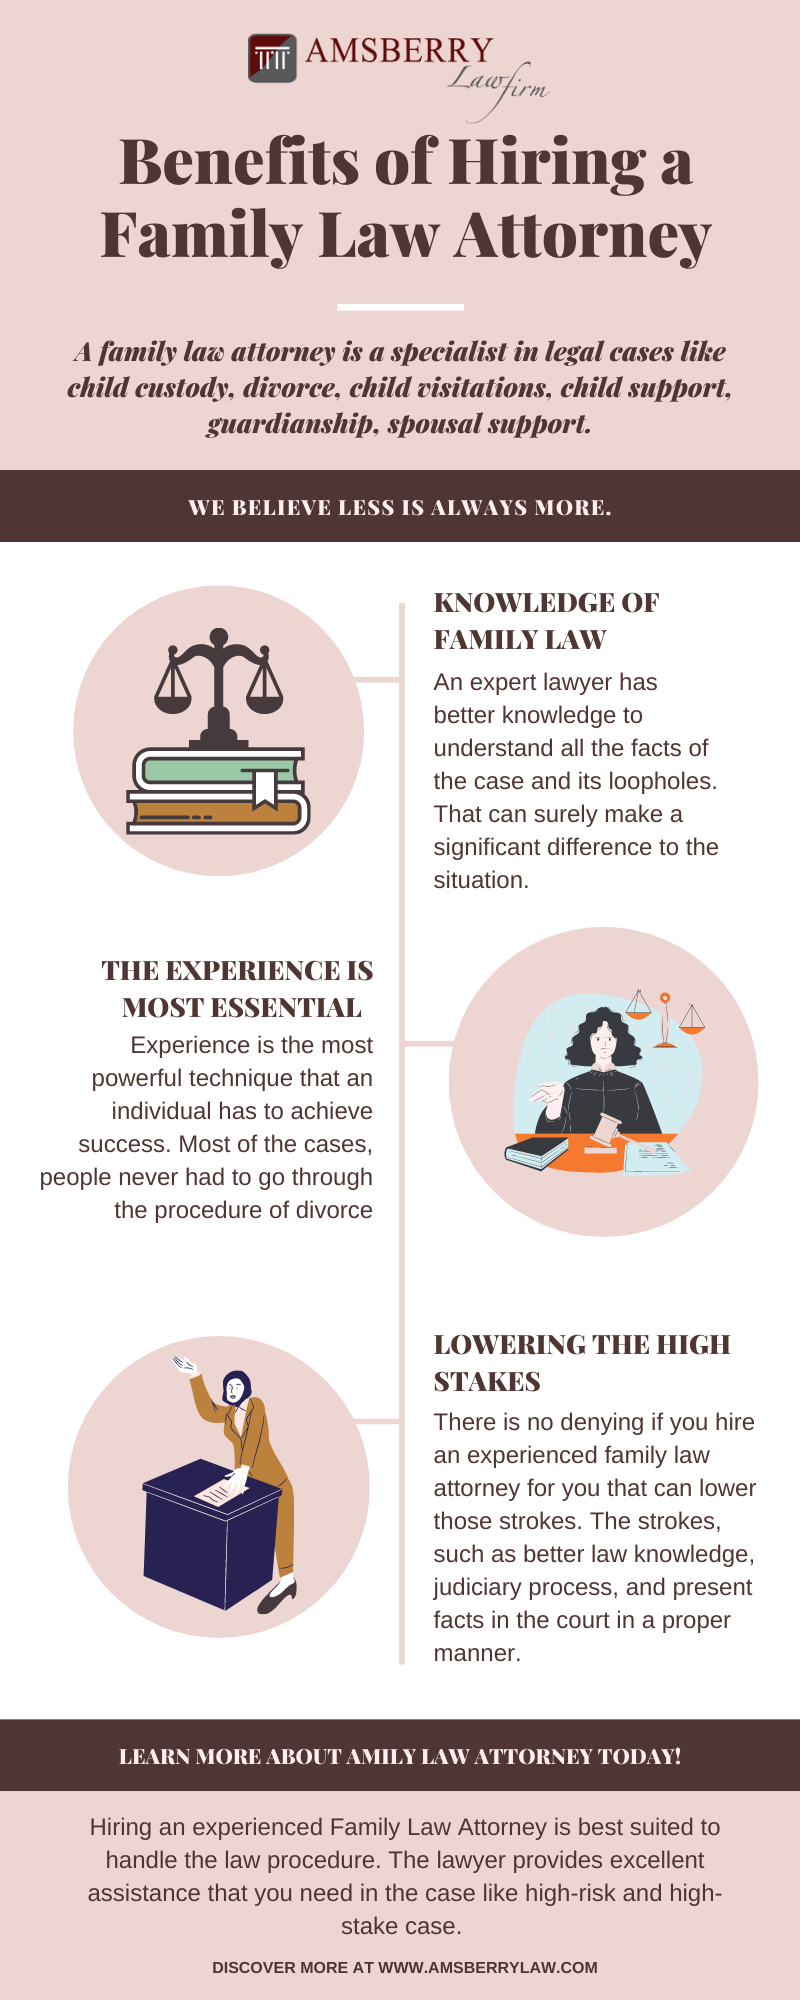 Benefits Of Hiring A Family Law Attorney In 2020 Family Law Attorney Family Law Attorney At Law